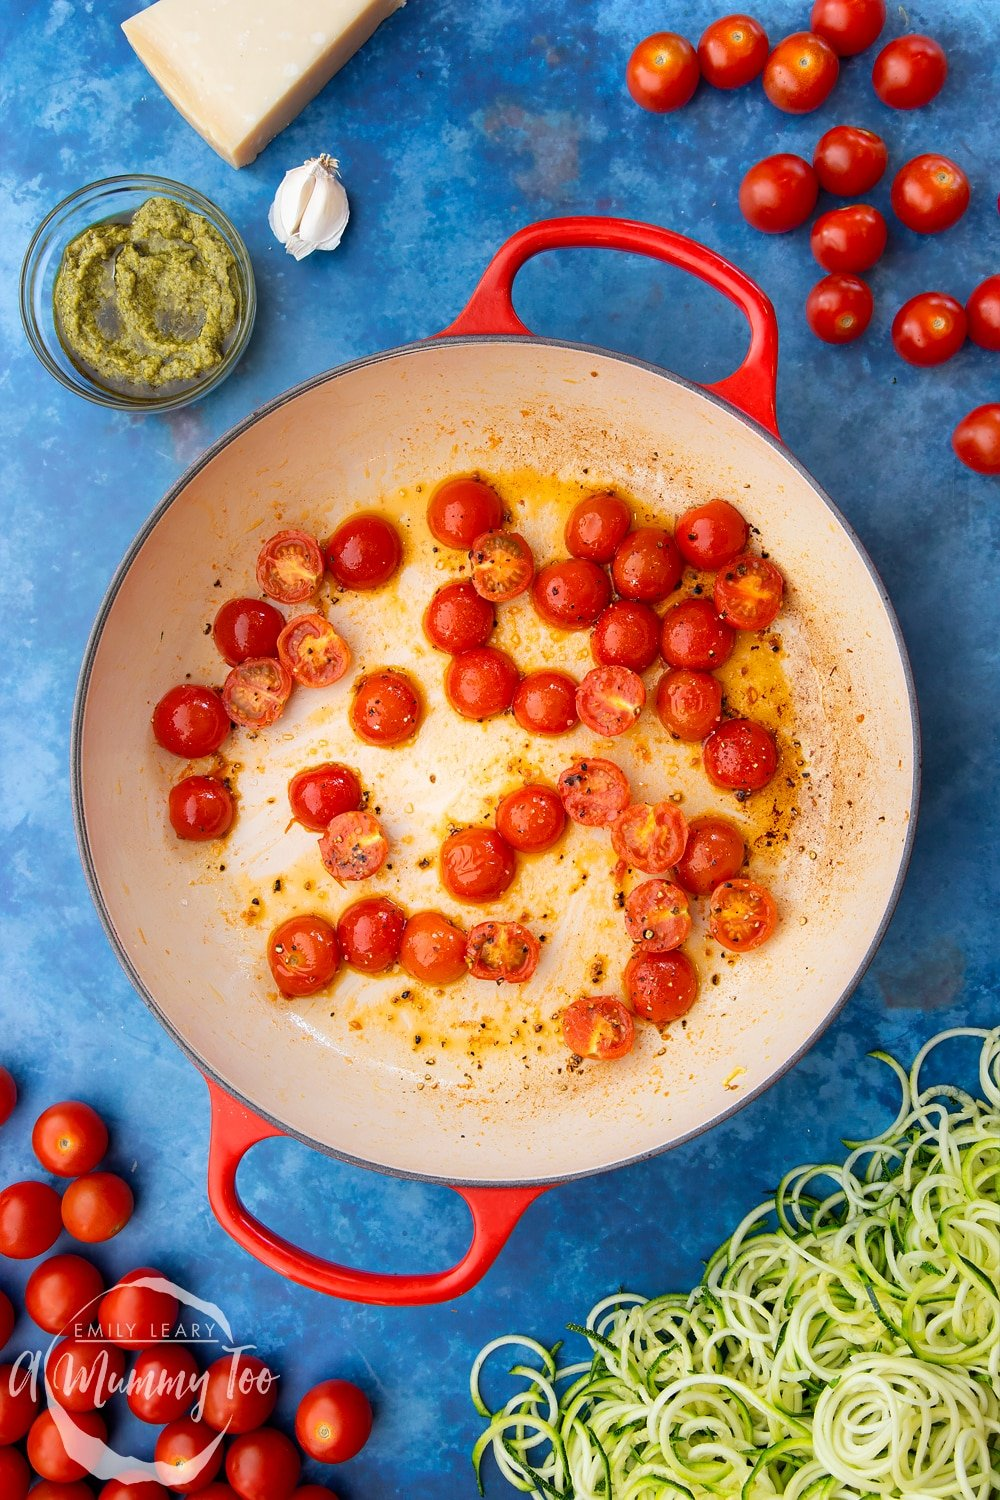 Cherry tomatoes, garlic, olive oil, black pepper and spiralised courgette in a frying pan - the tomatoes have been briefly cooked